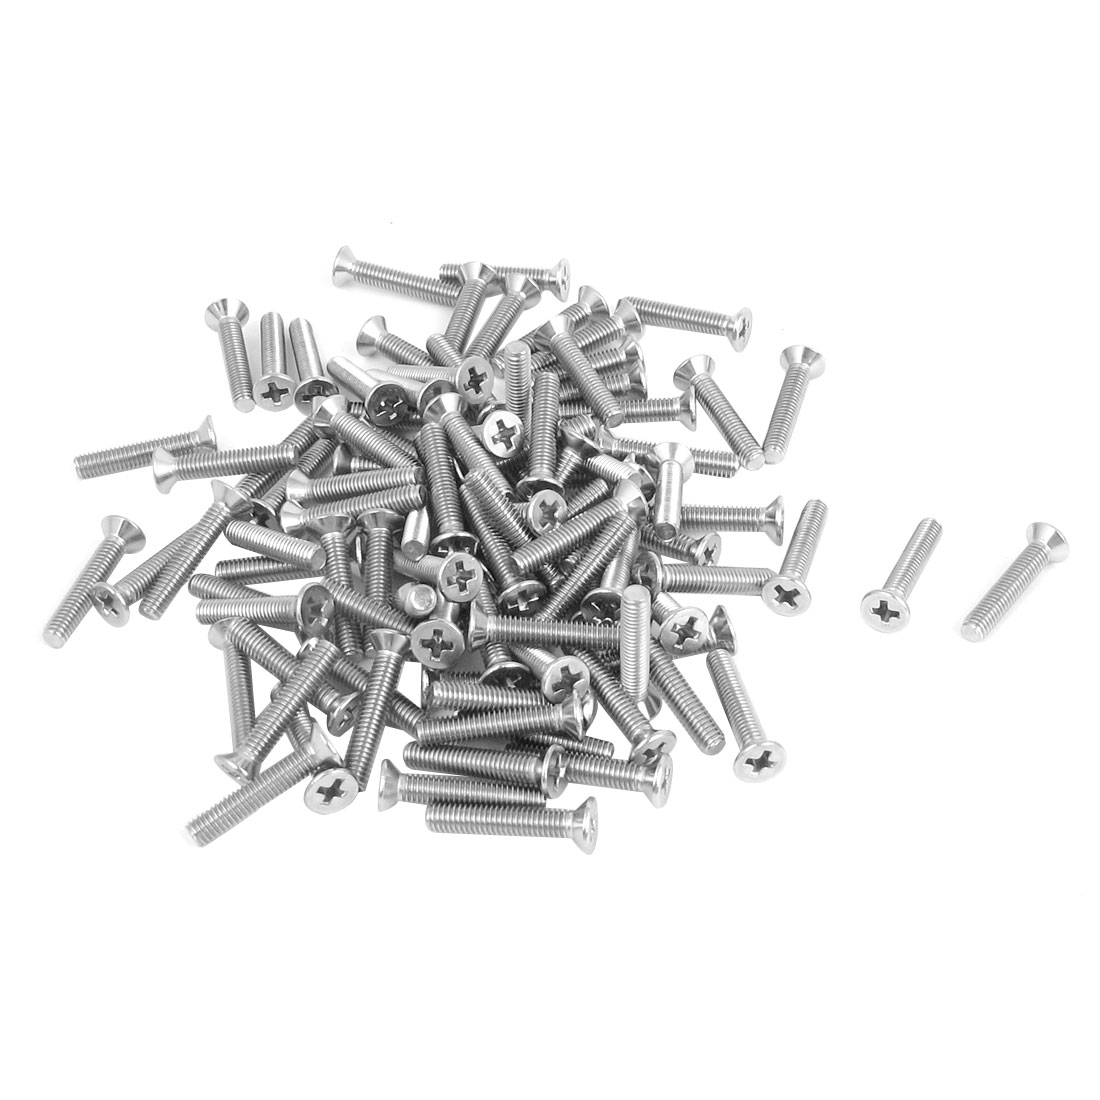 M3 x 16mm Metric Phillips Flat Head Countersunk Bolts Machine Screws 100pcs